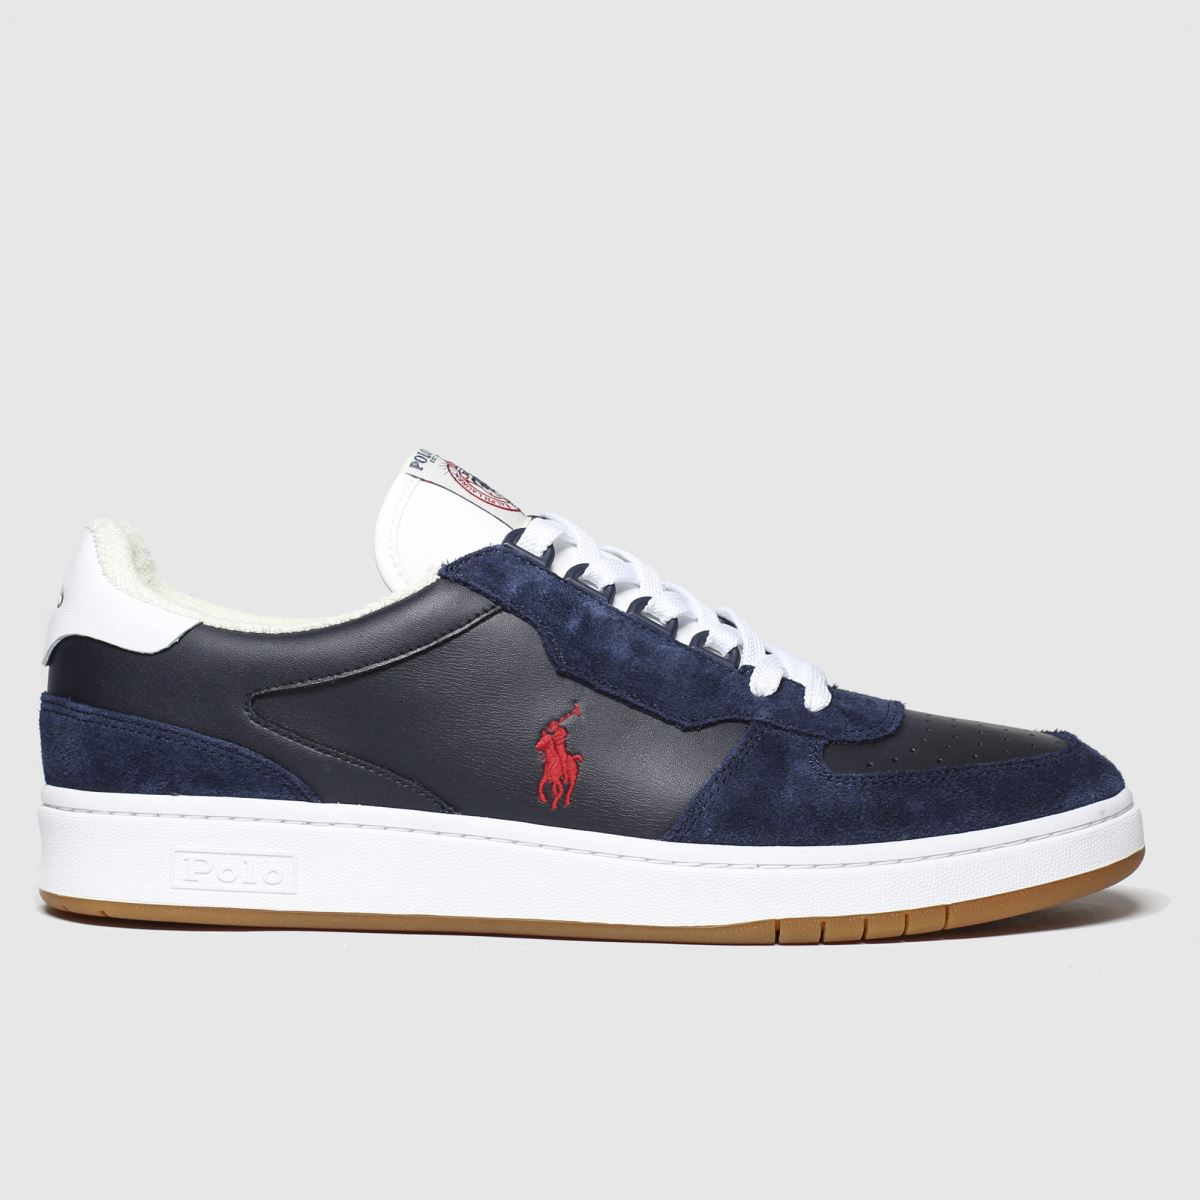 Polo Ralph Lauren Navy & Red Crt Pp Trainers